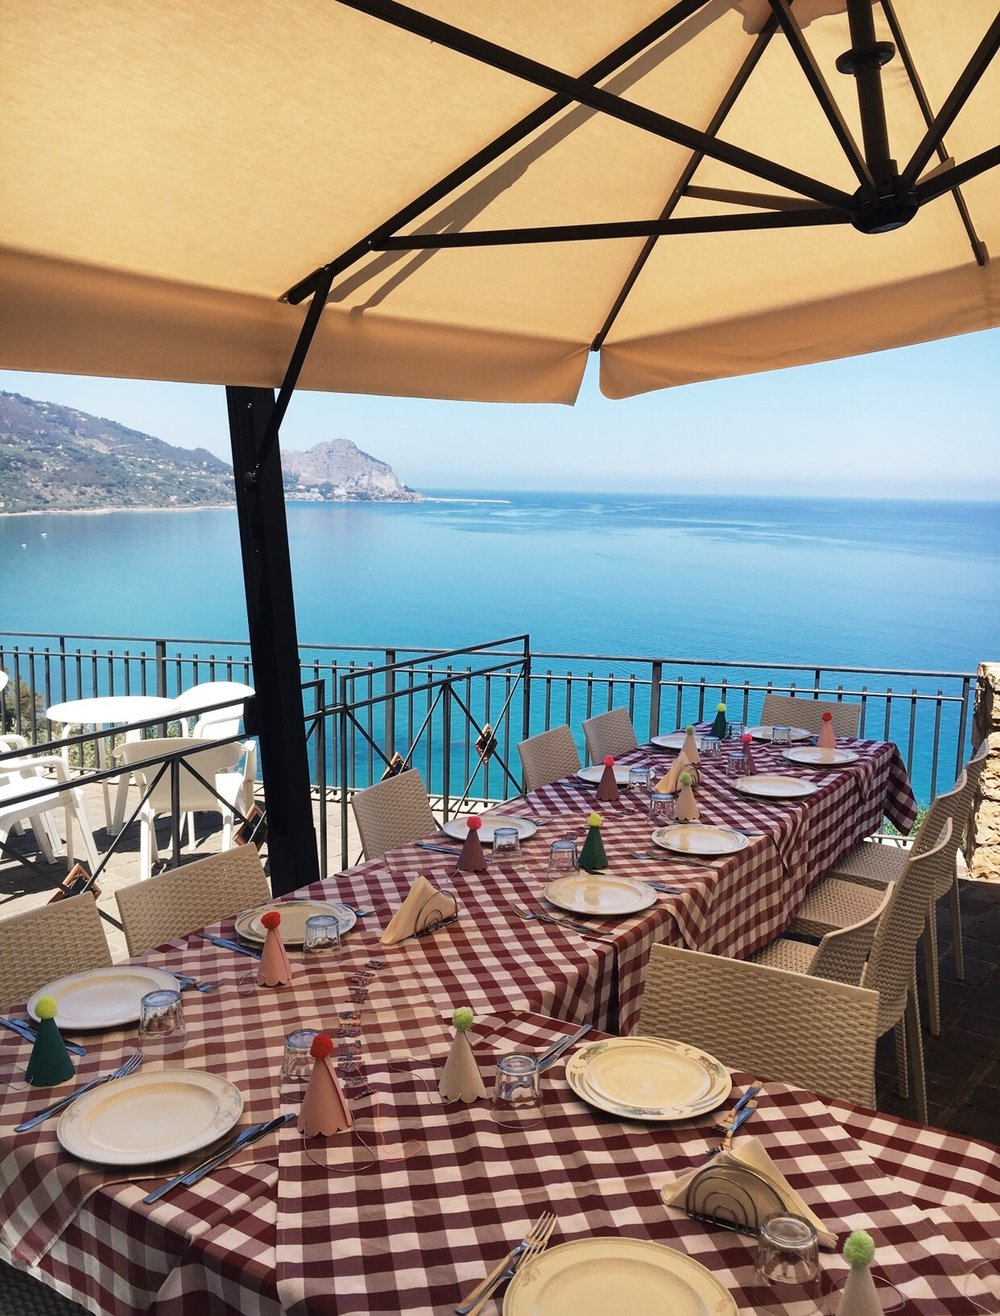 My favourite lunch restaurants in Italy - Lois Avery